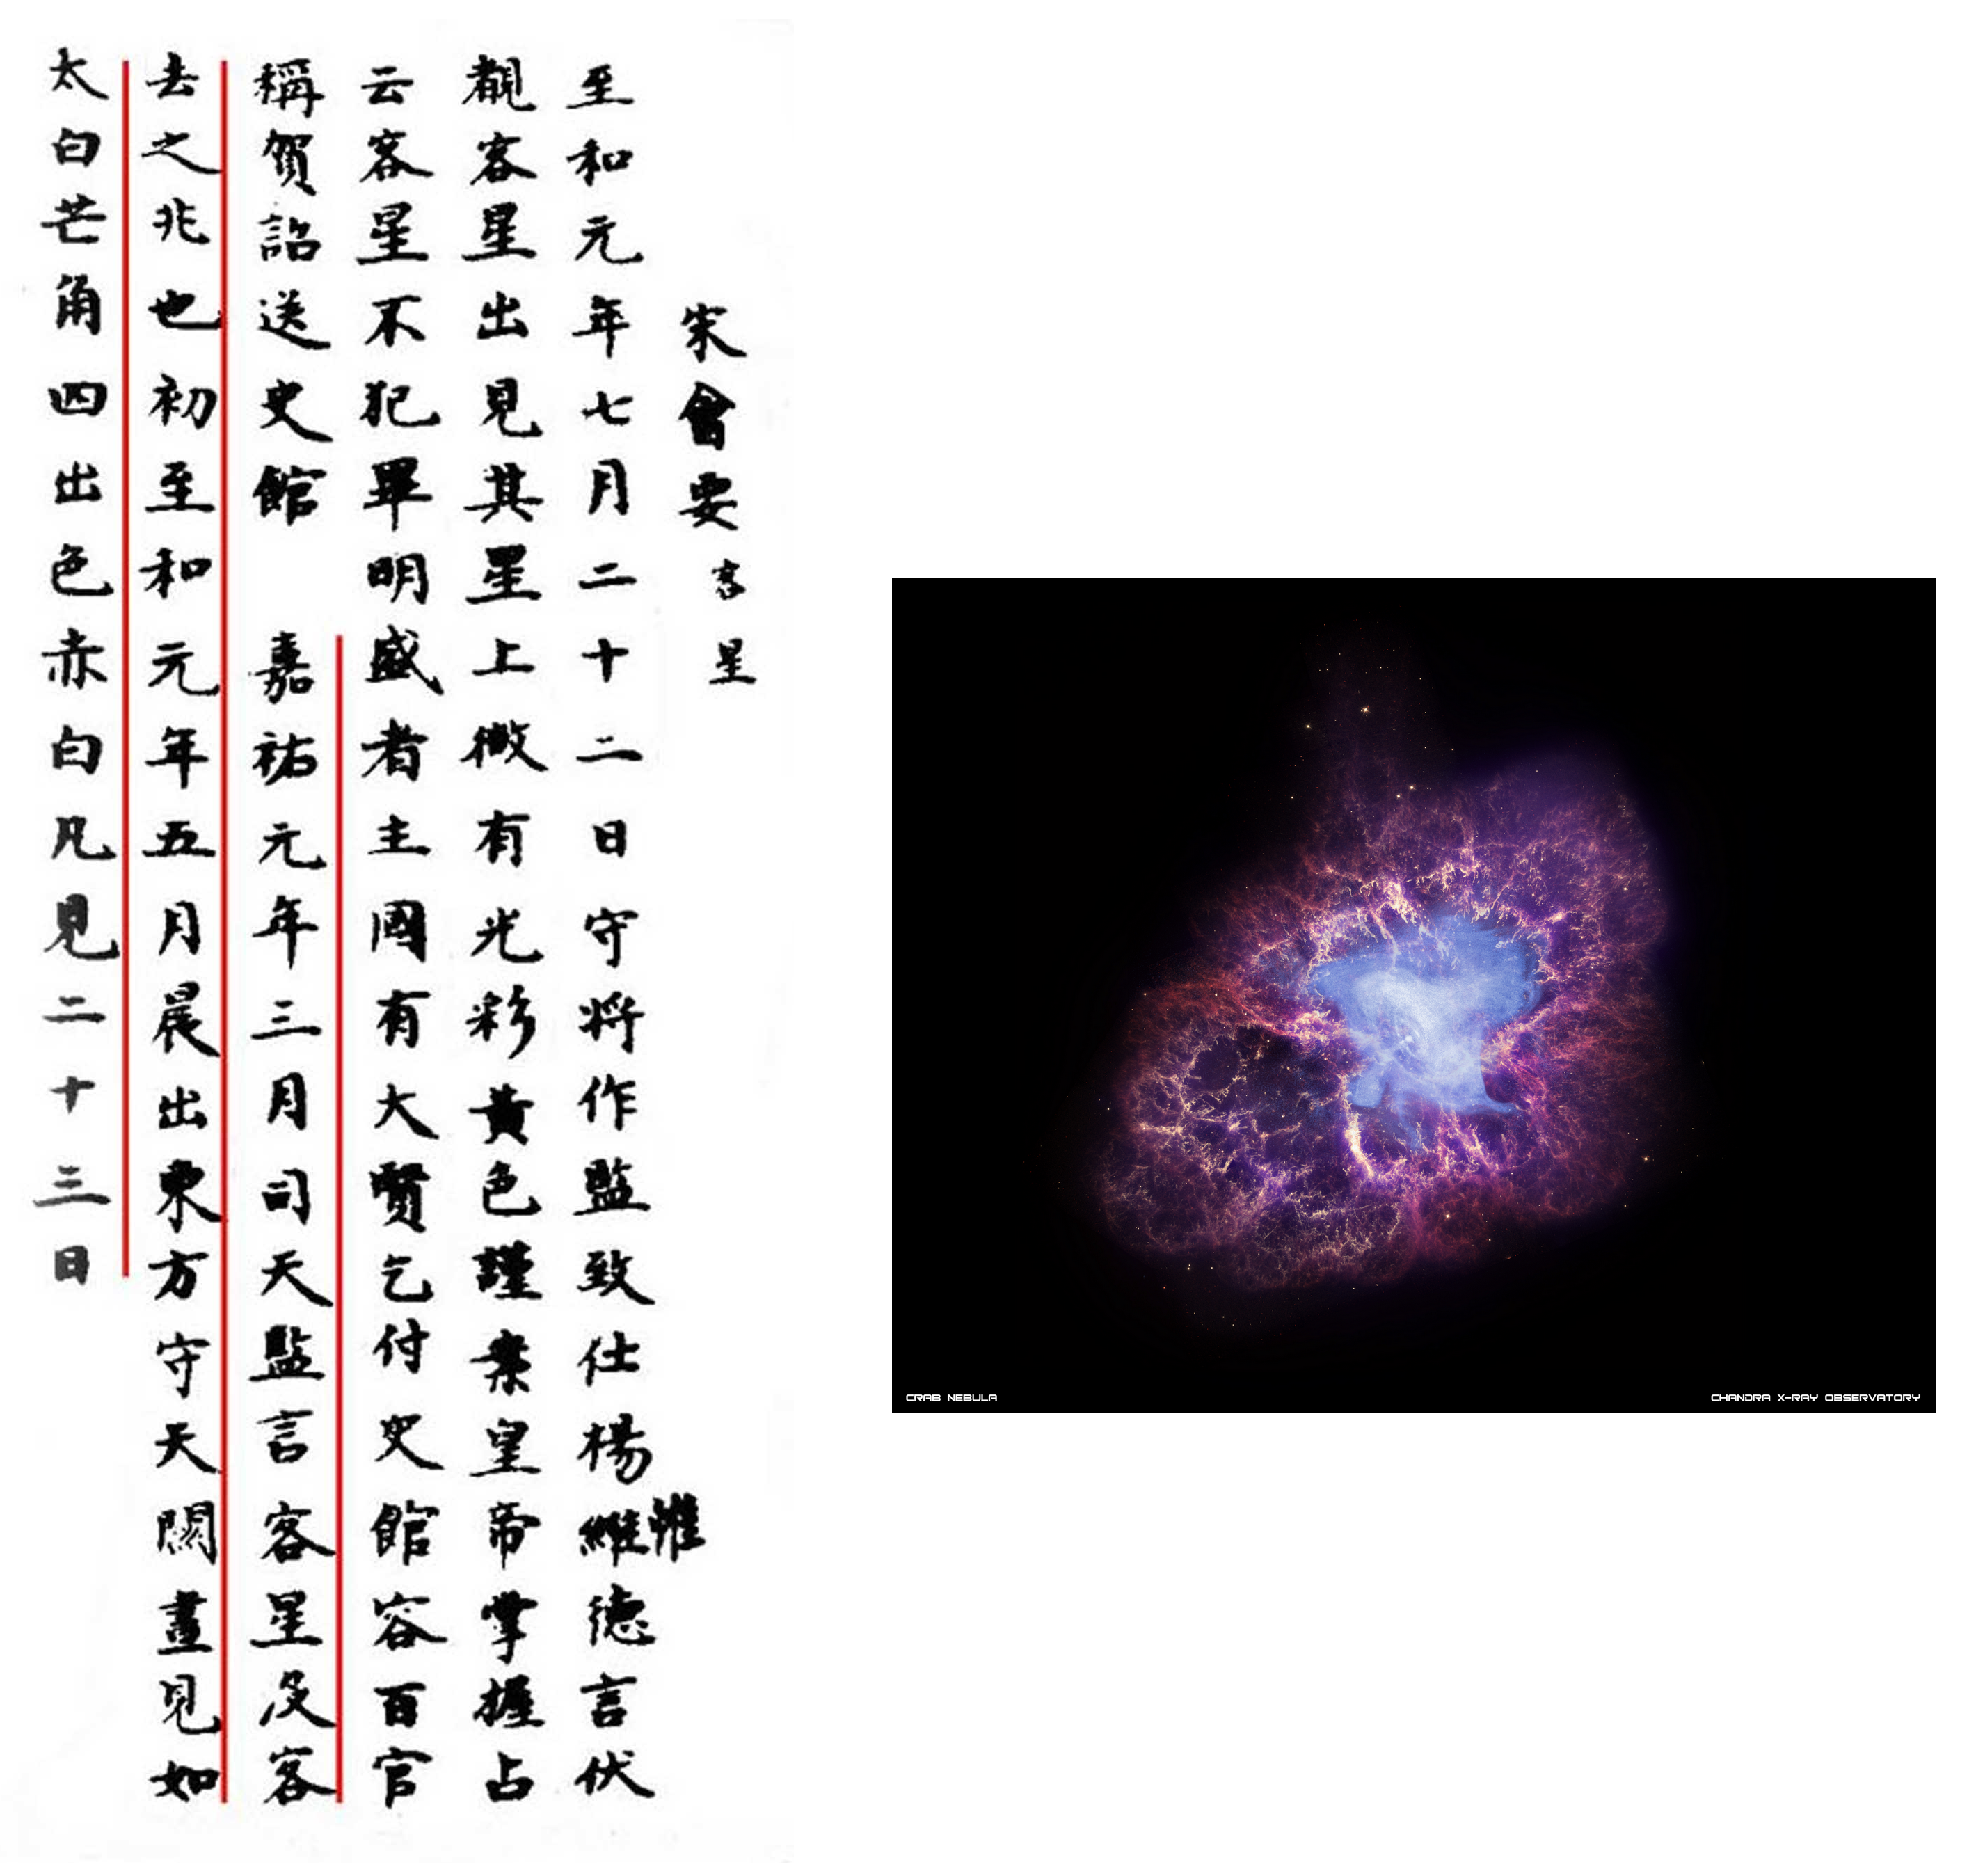 One of the accounts of the Song dynasty describing the appearance of the Crab supernova